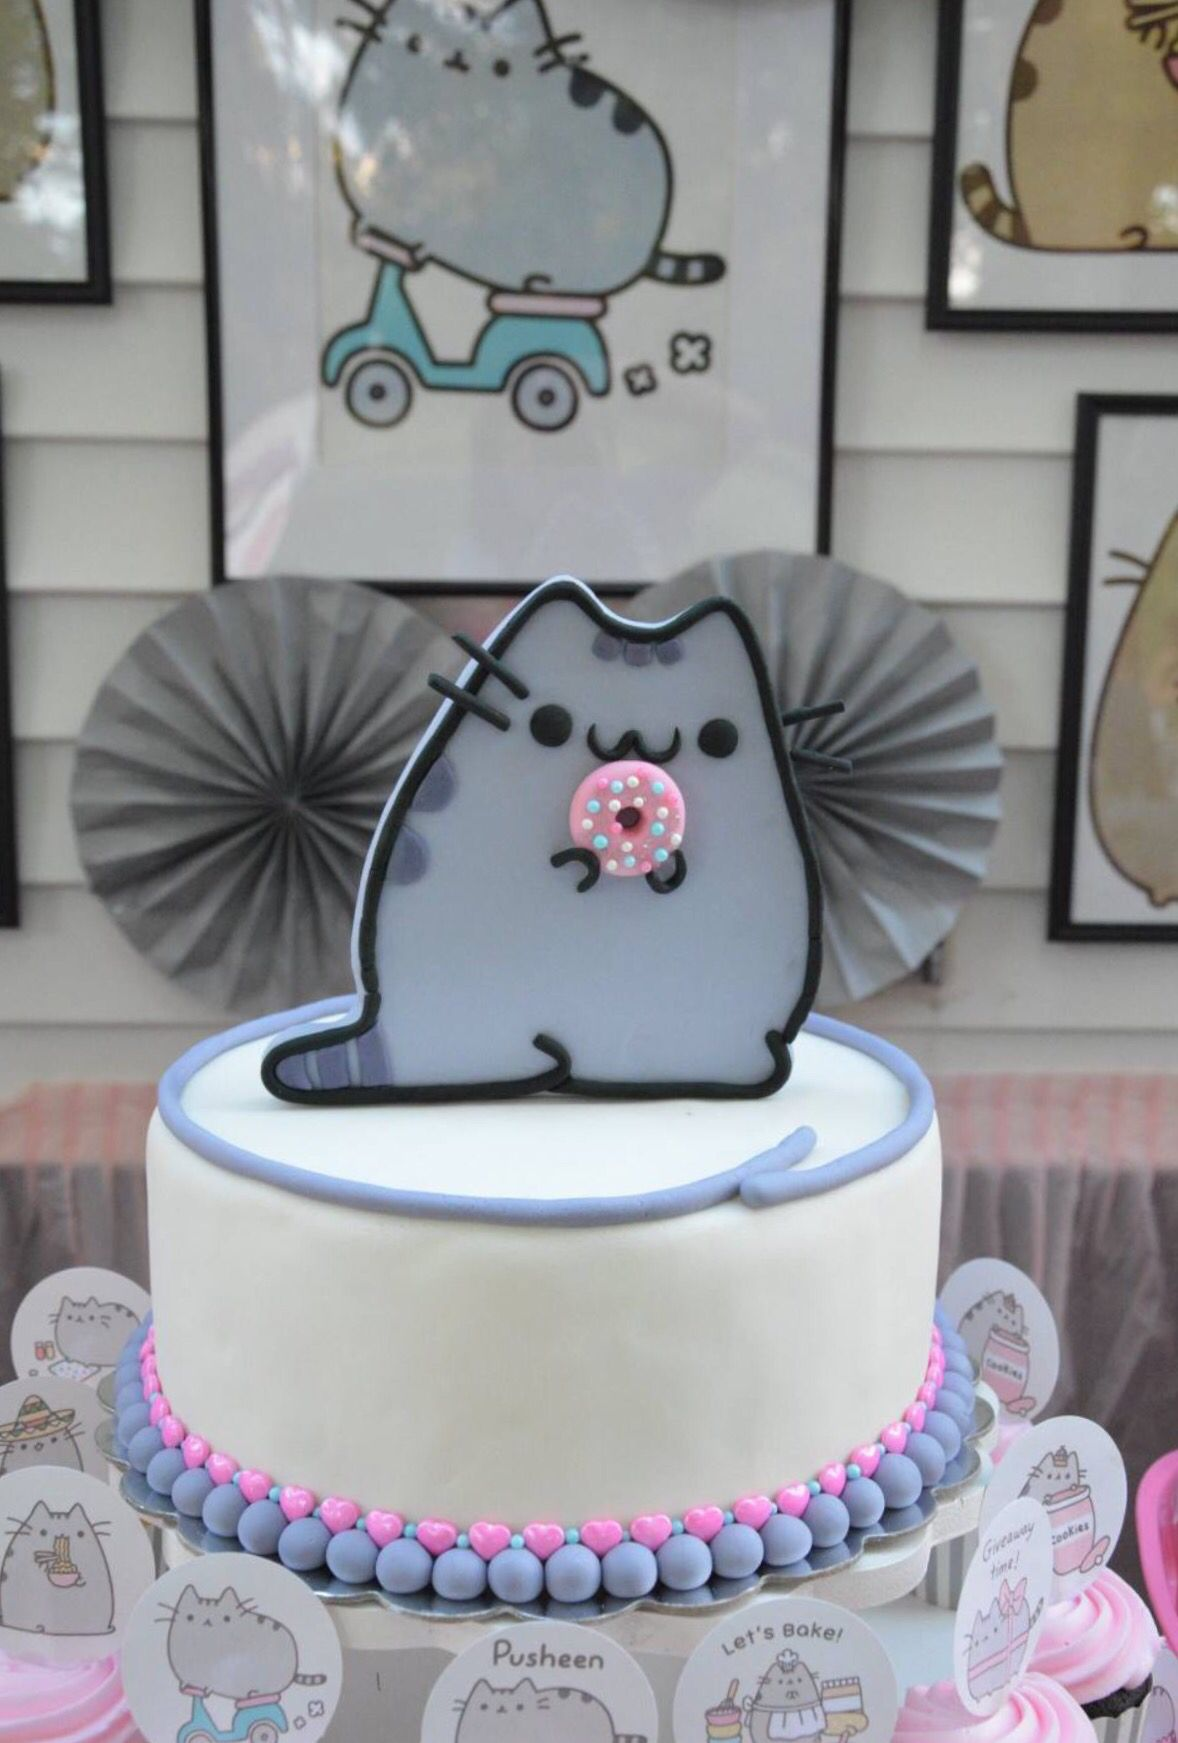 Pusheen The Cat Birthday Cake Pusheen The Cat Party By